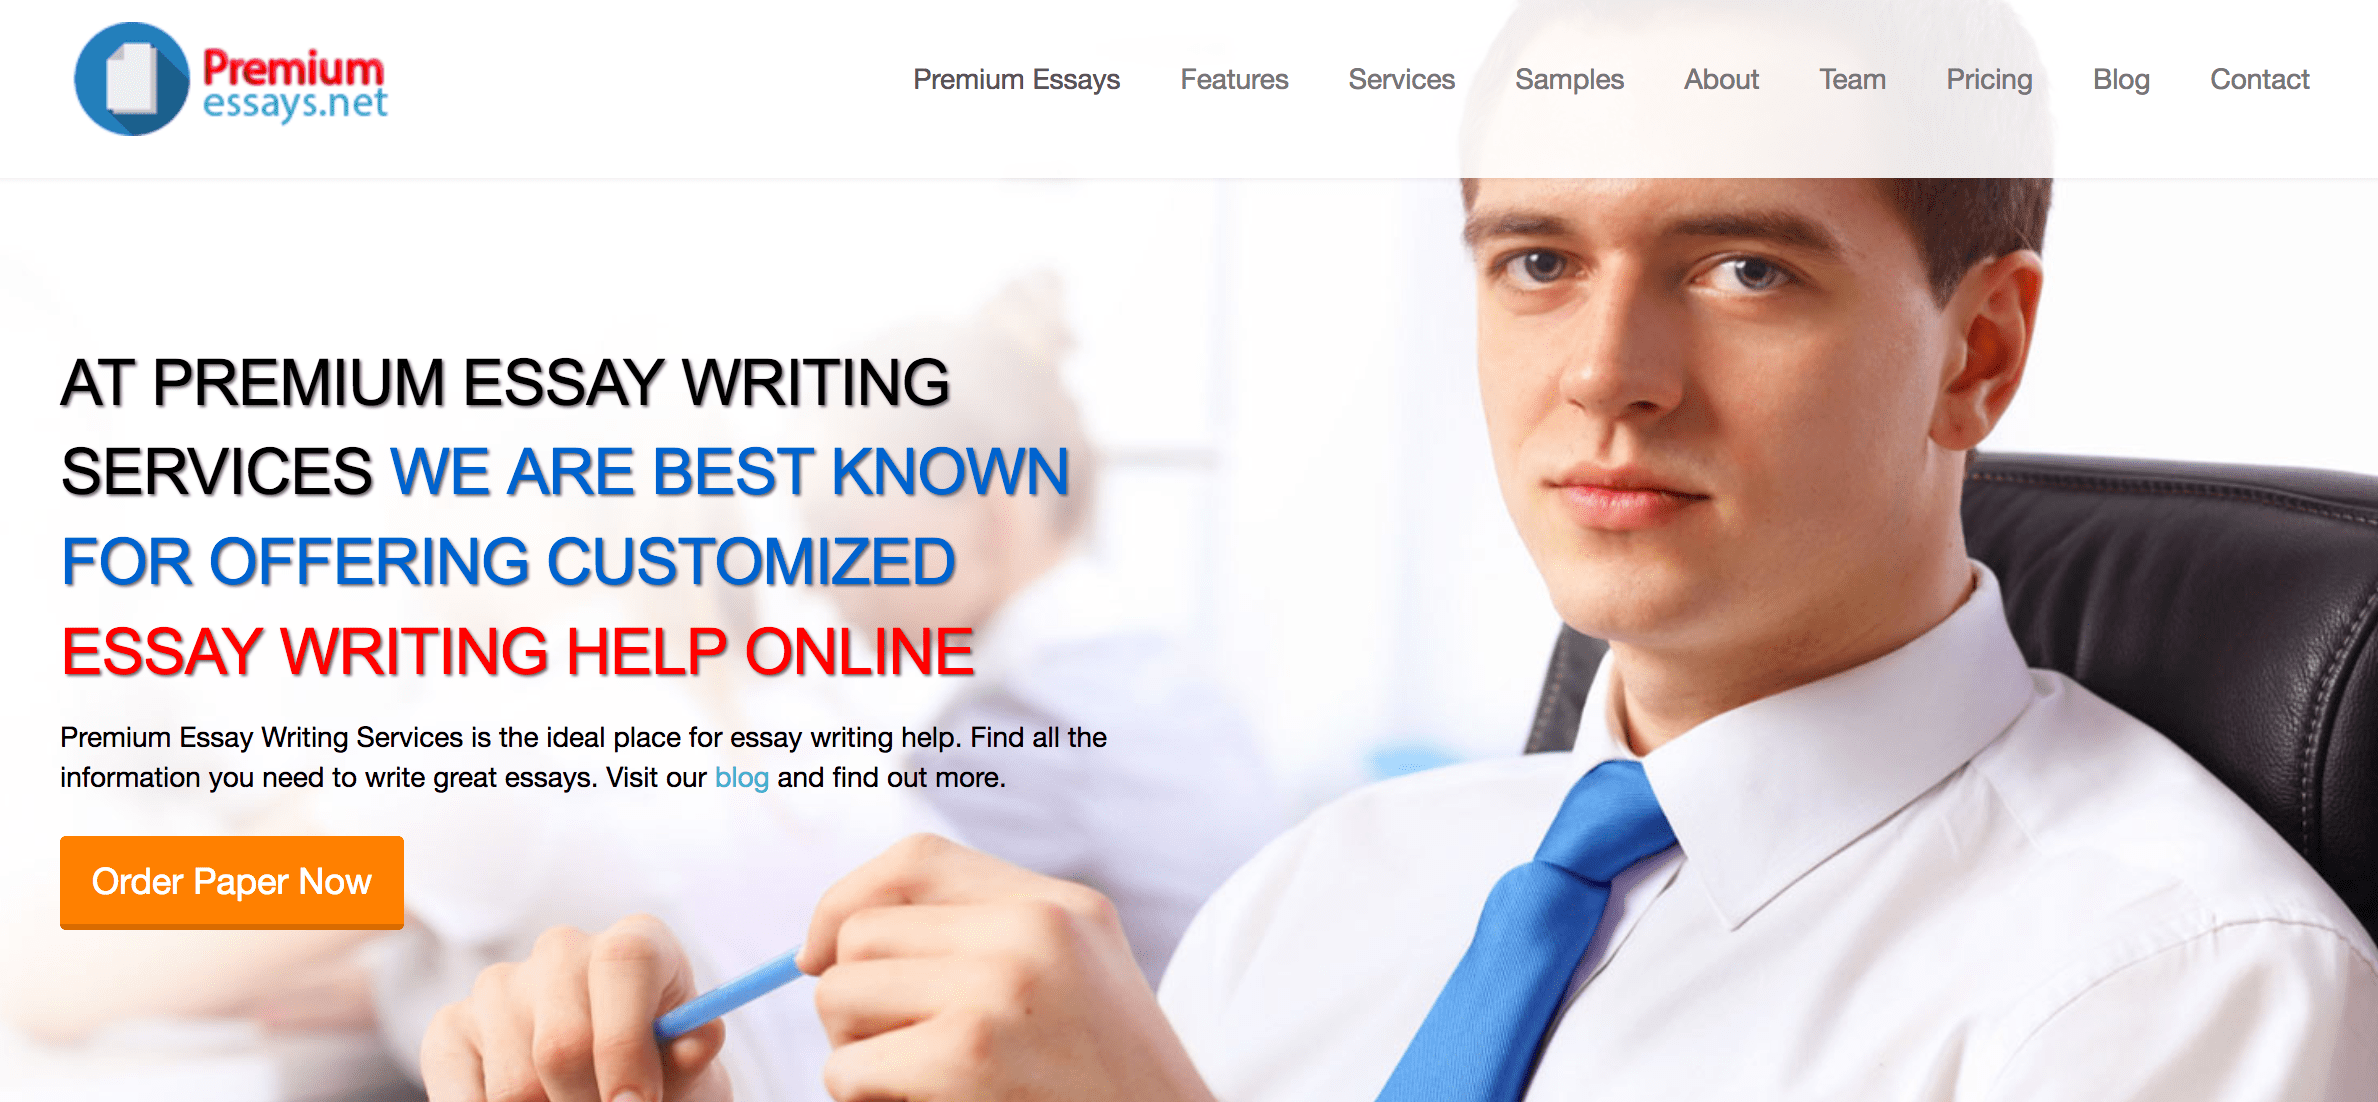 013 Essay Example Writing Service 3752552280 Premium Wondrous Cheap Australia Best Reddit Reviews Full